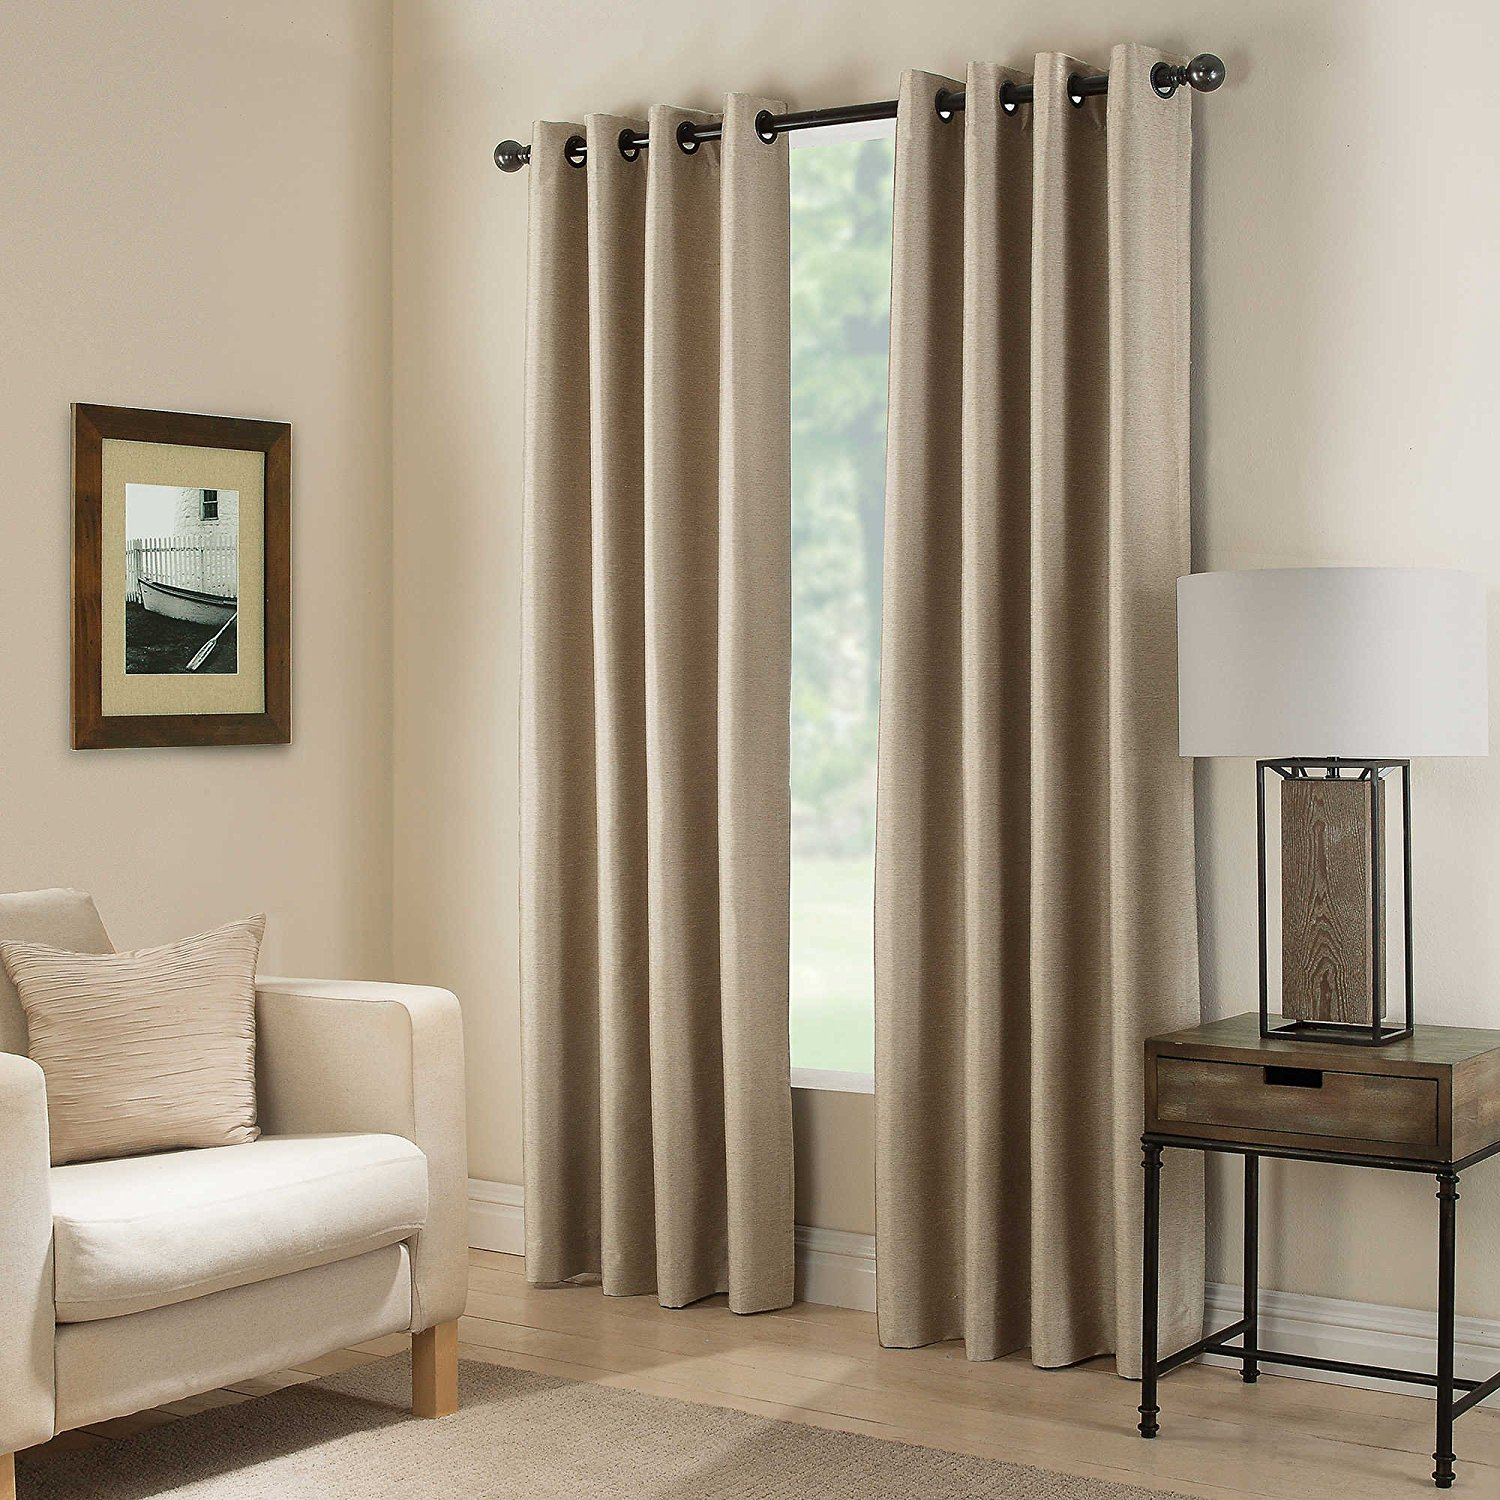 "(#32) Hotel Quality SILVER Grommet Top, FAUX SILK 1 PANEL TAUPE TAN SOLID THERMAL FOAM LINED BLACKOUT HEAVY THICK WINDOW CURTAIN DRAPES  GROMMETS 84"" LENGTH"